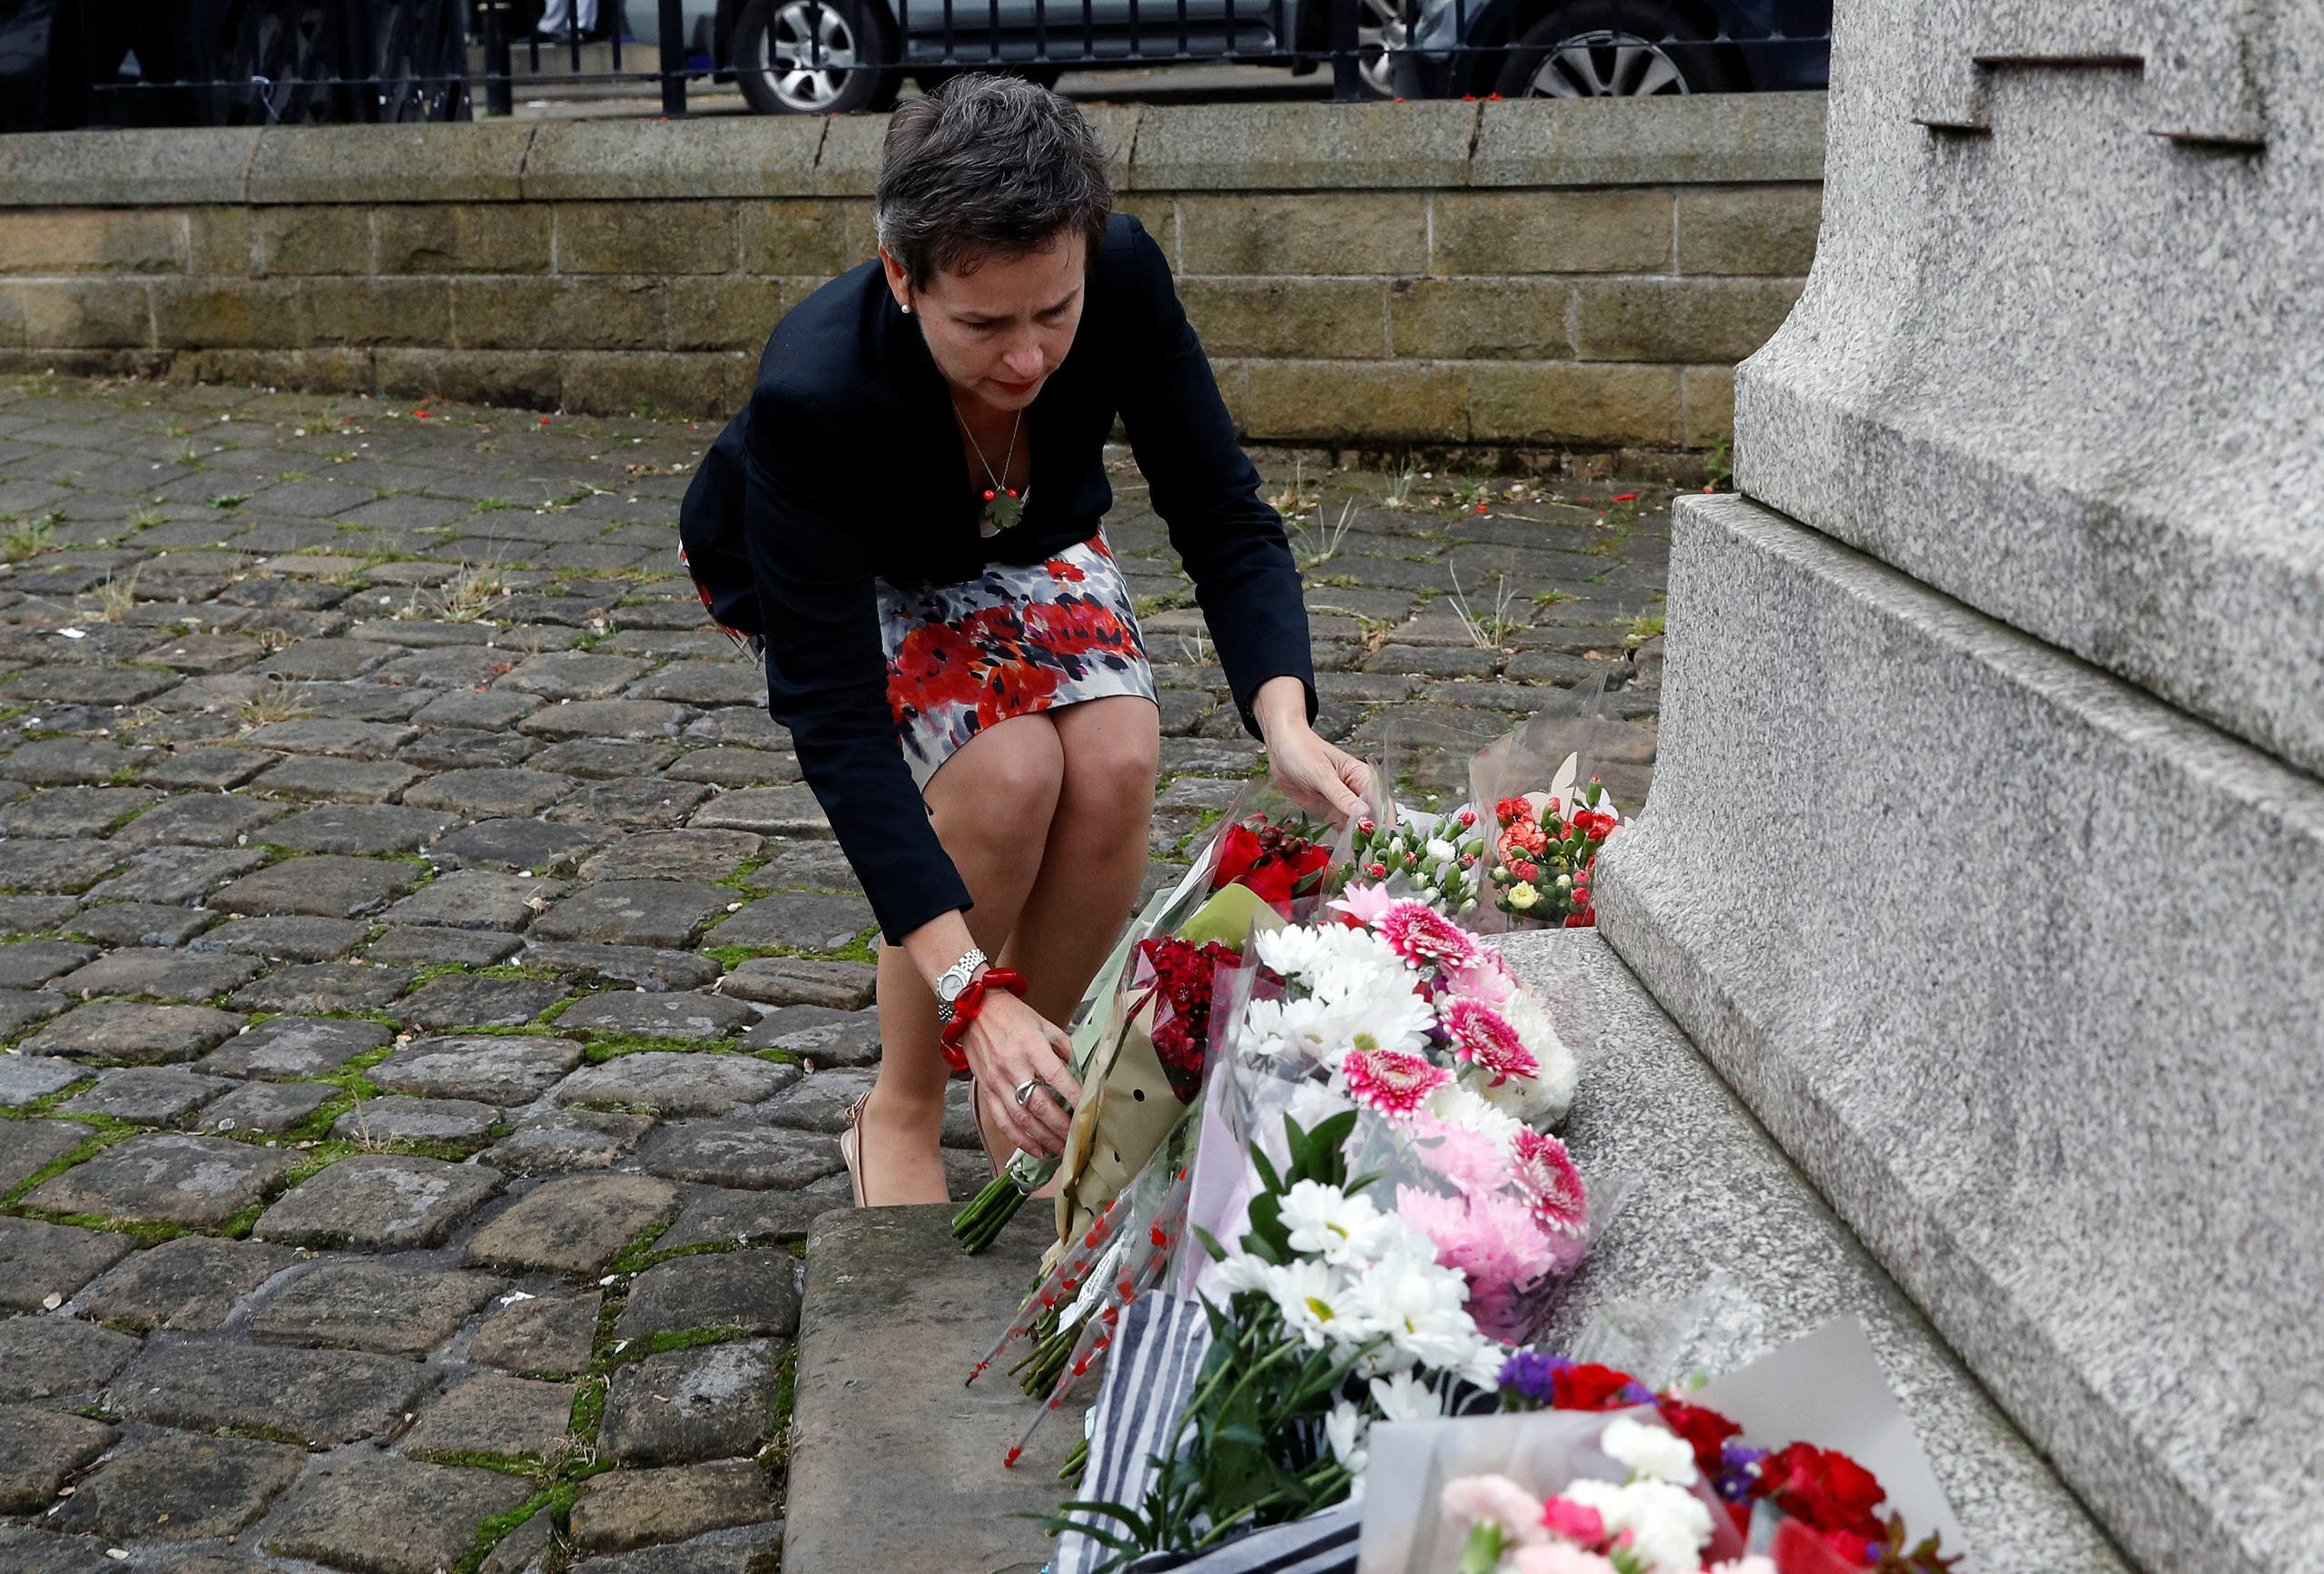 Labour MP Mary Creagh arrives to lay flowers in tribute to Jo Cox, near the scene where she was killed in Birstall near Leeds, June 16, 2016. reuters